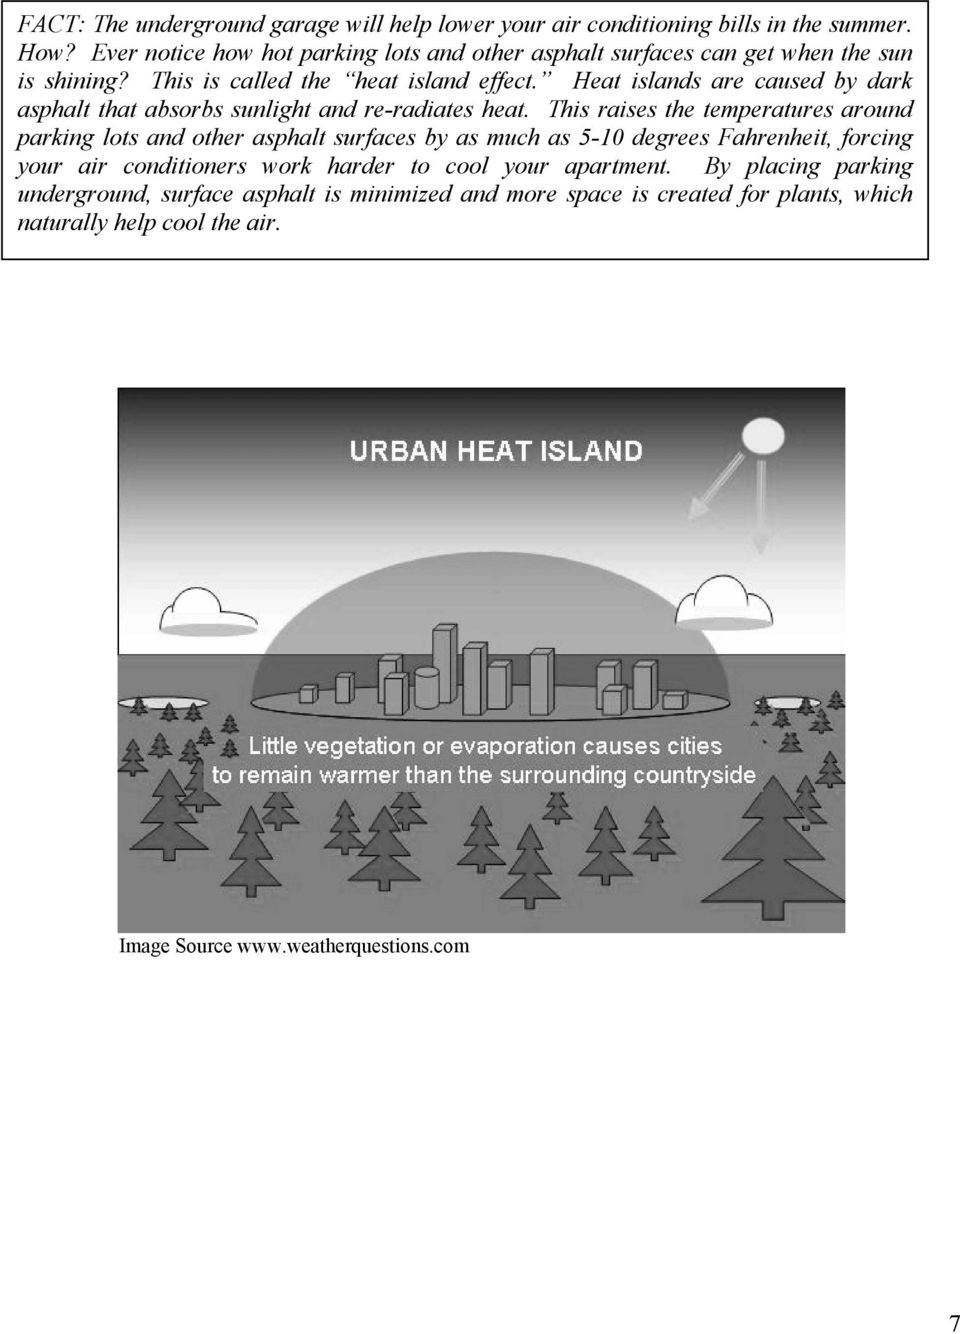 Heat islands are caused by dark asphalt that absorbs sunlight and re-radiates heat.